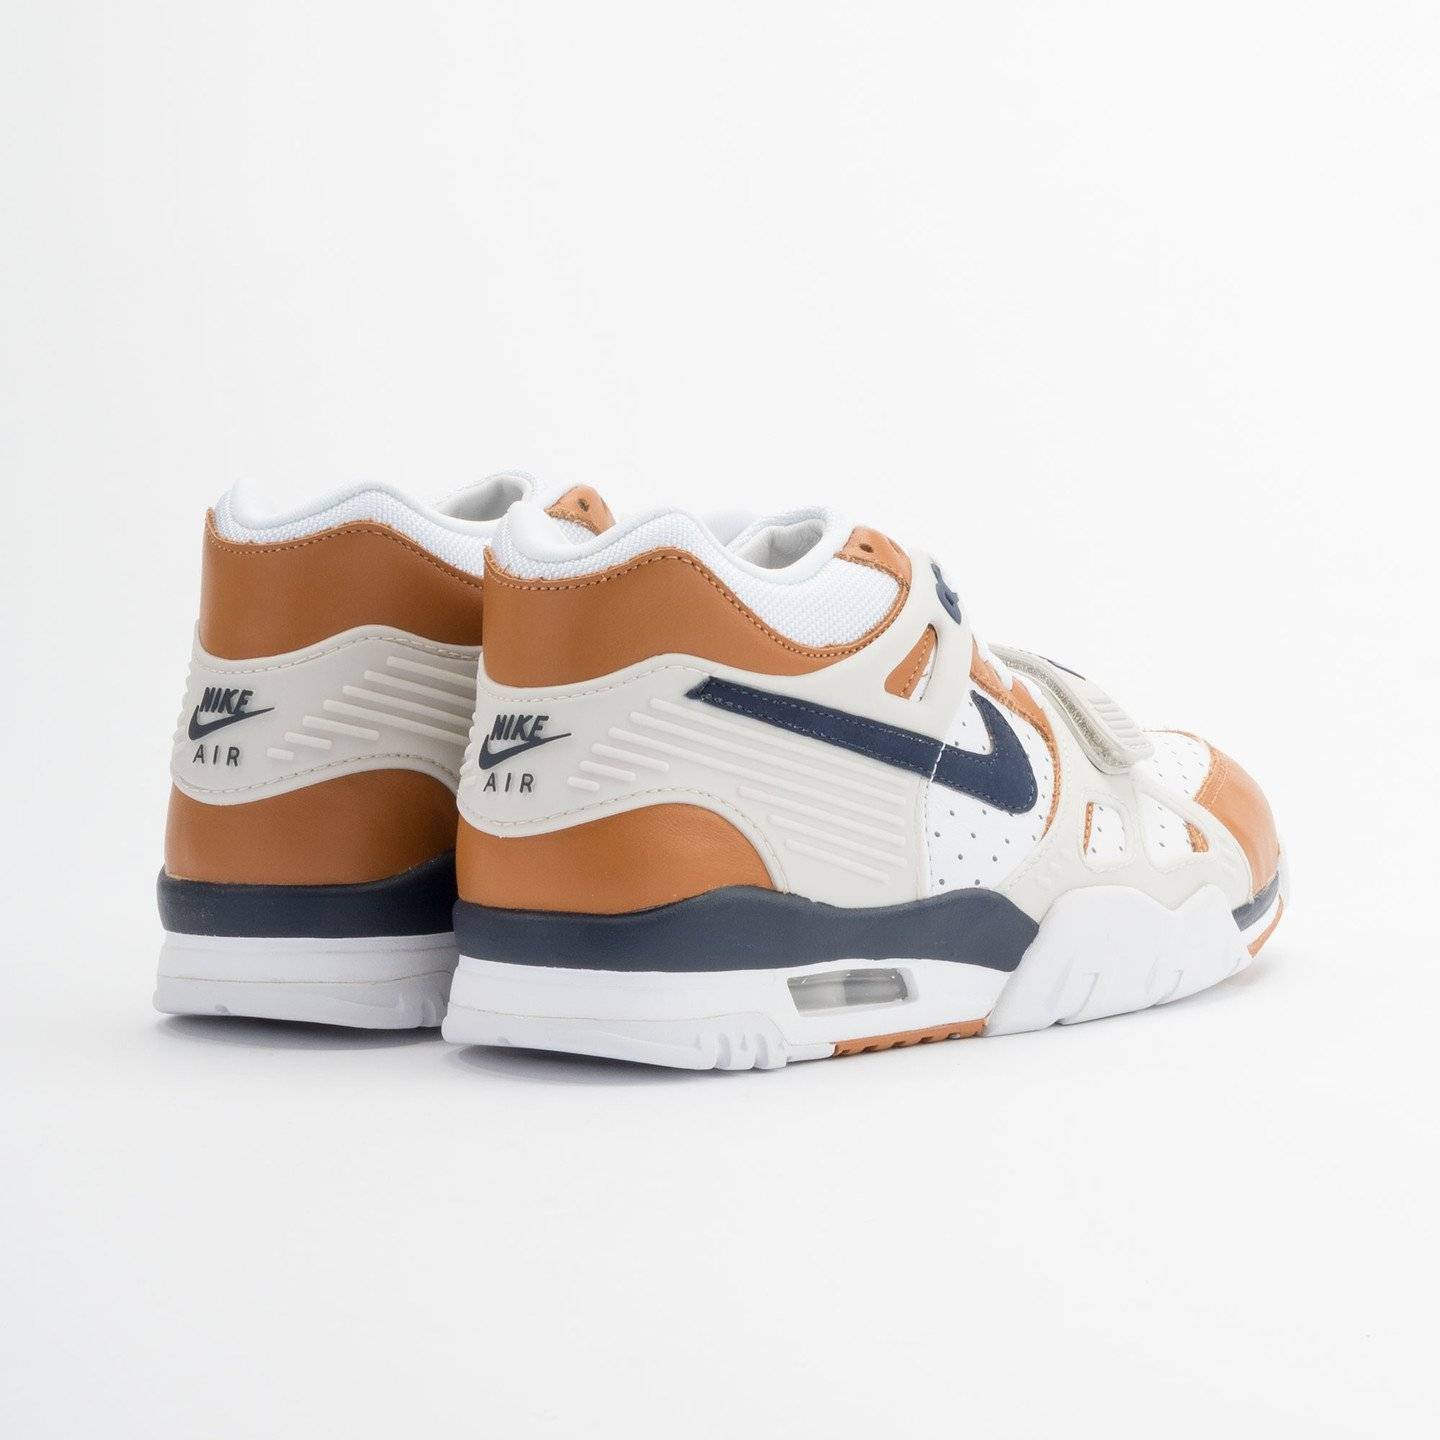 Nike Air Trainer 3 Premium Medicine Ball White/Mid Navy-Gngr-Lght Bn 705425-100-40.5